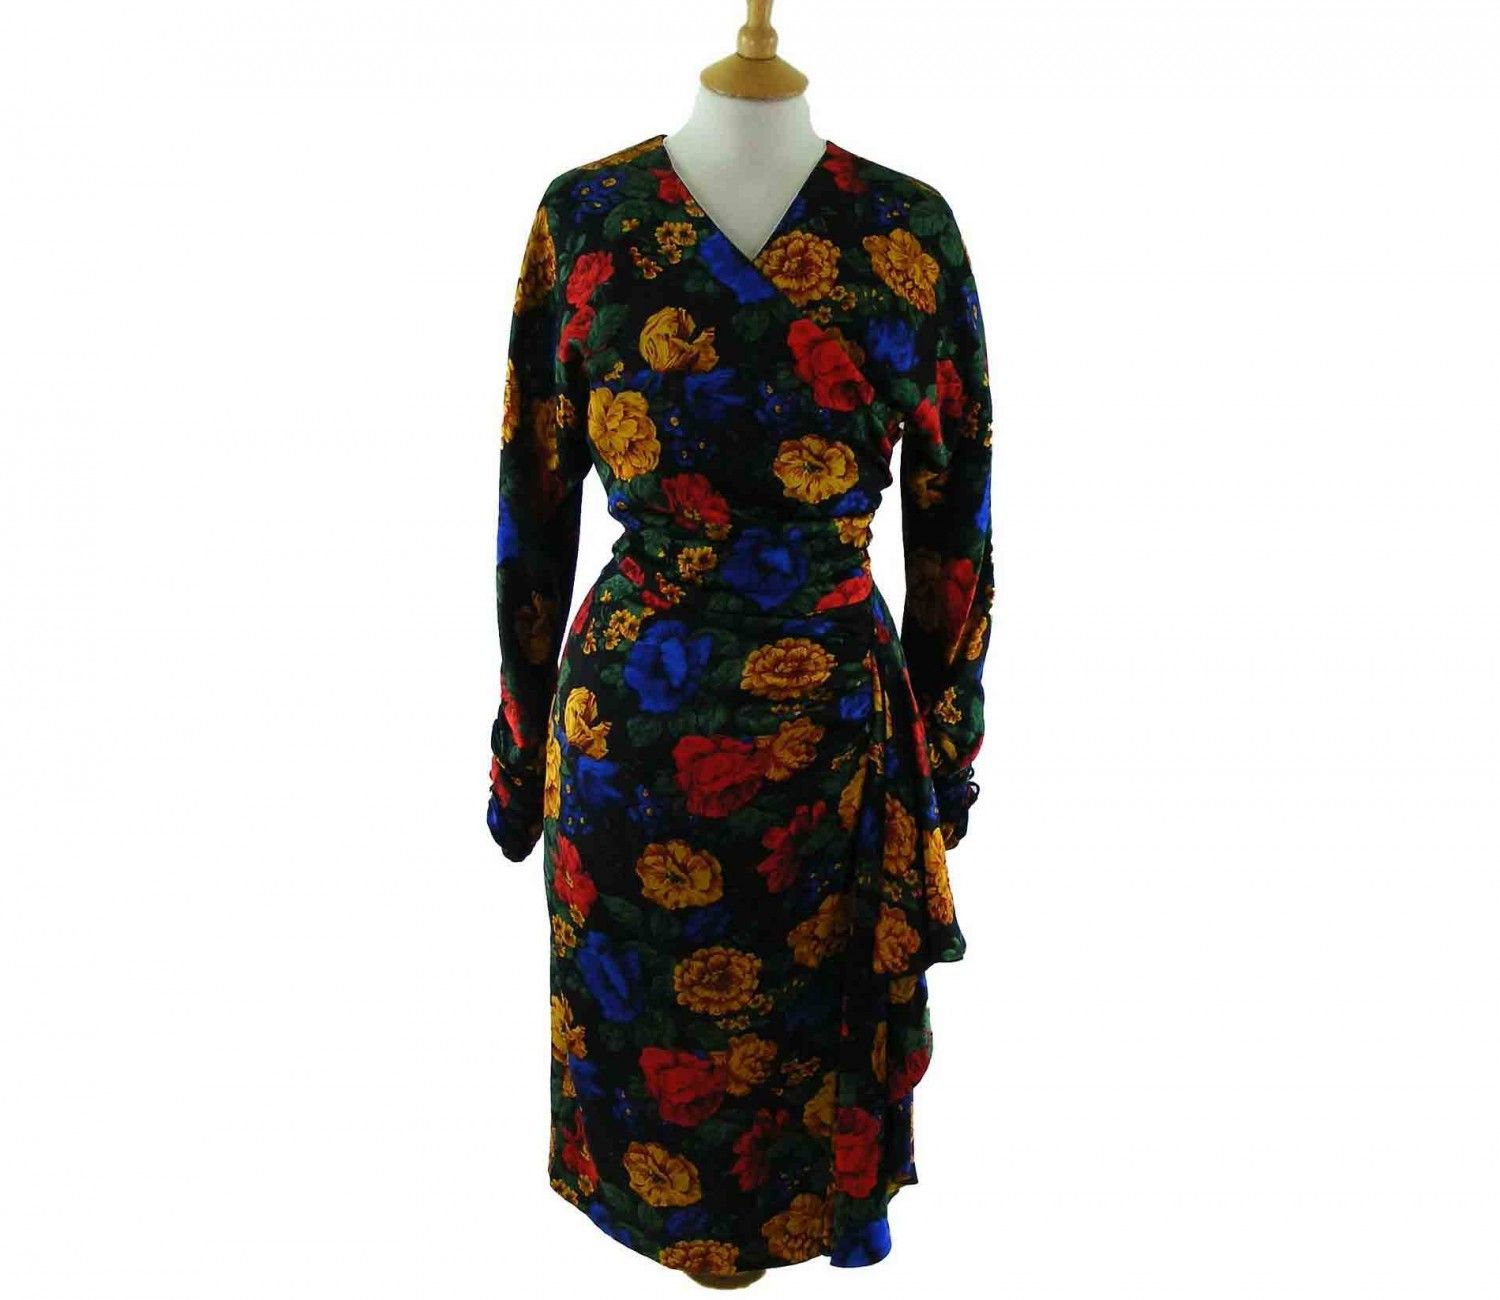 """80s Floral Print Dress Features a big floral print in yellow, blue, red, green and black  #80sdress #vintagefashion #vintage #retro #vintageclothing #80s #1980s #vintagedress <link rel=""""canonical"""" href=""""http://www.blue17.co.uk/>"""